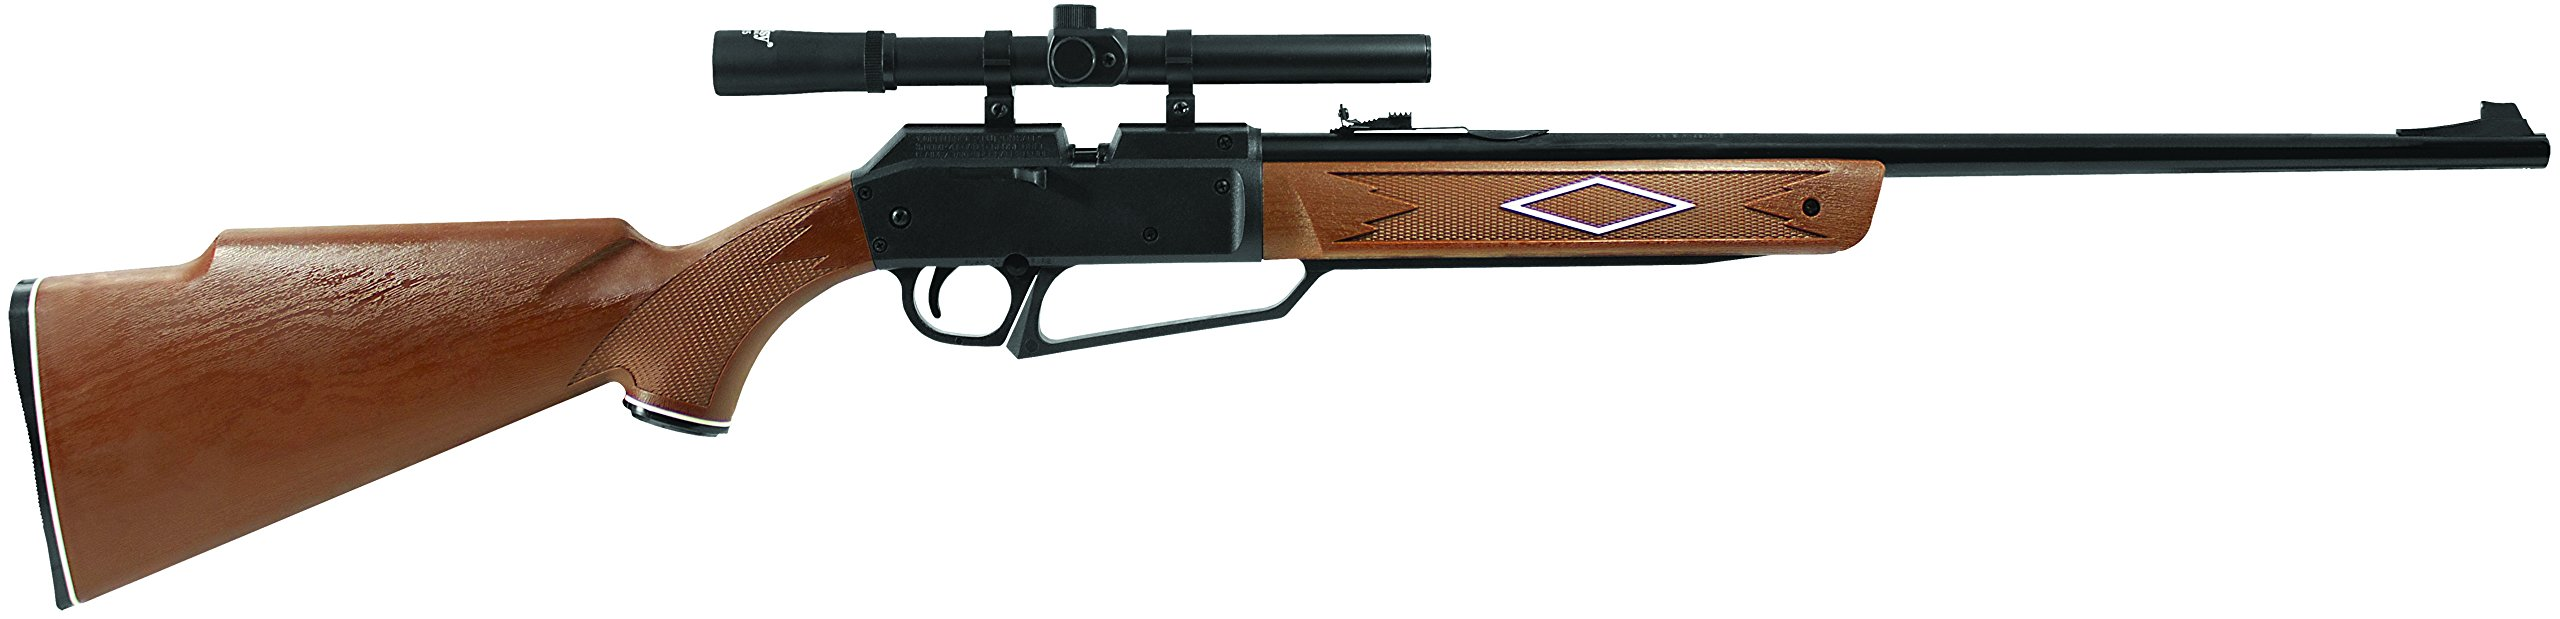 Daisy Outdoor Products 880 Rifle with Scope